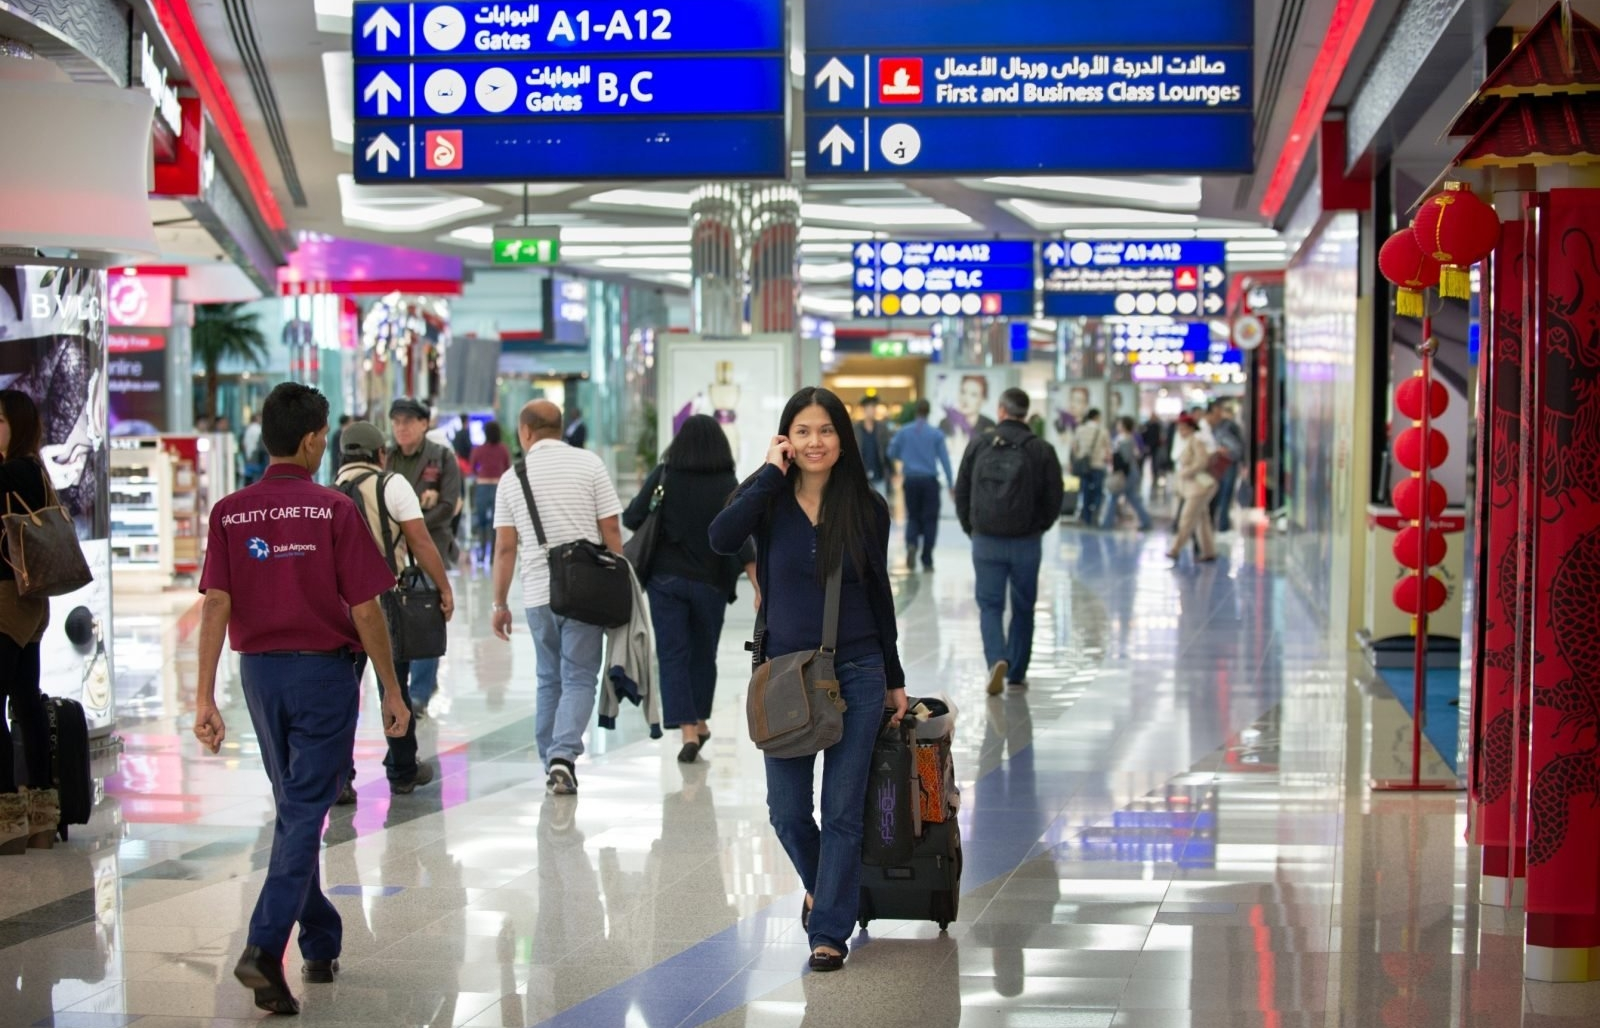 UAE: All passengers must declare currencies, negotiable instruments valued over Dhs60,000